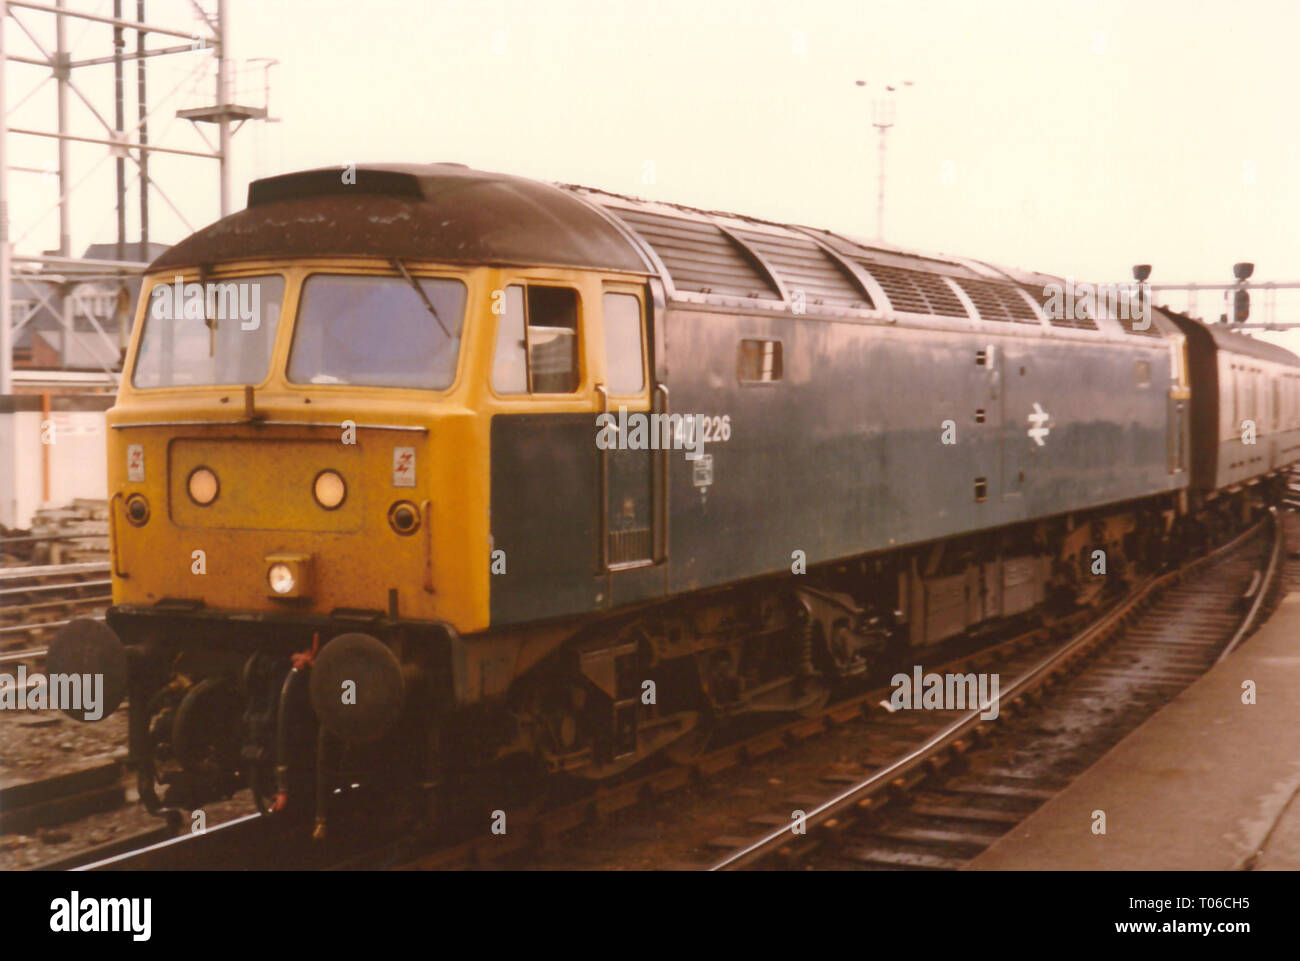 Class 47 47226 arrives at Newcastle Central Station's western end in the 1980s. - Stock Image